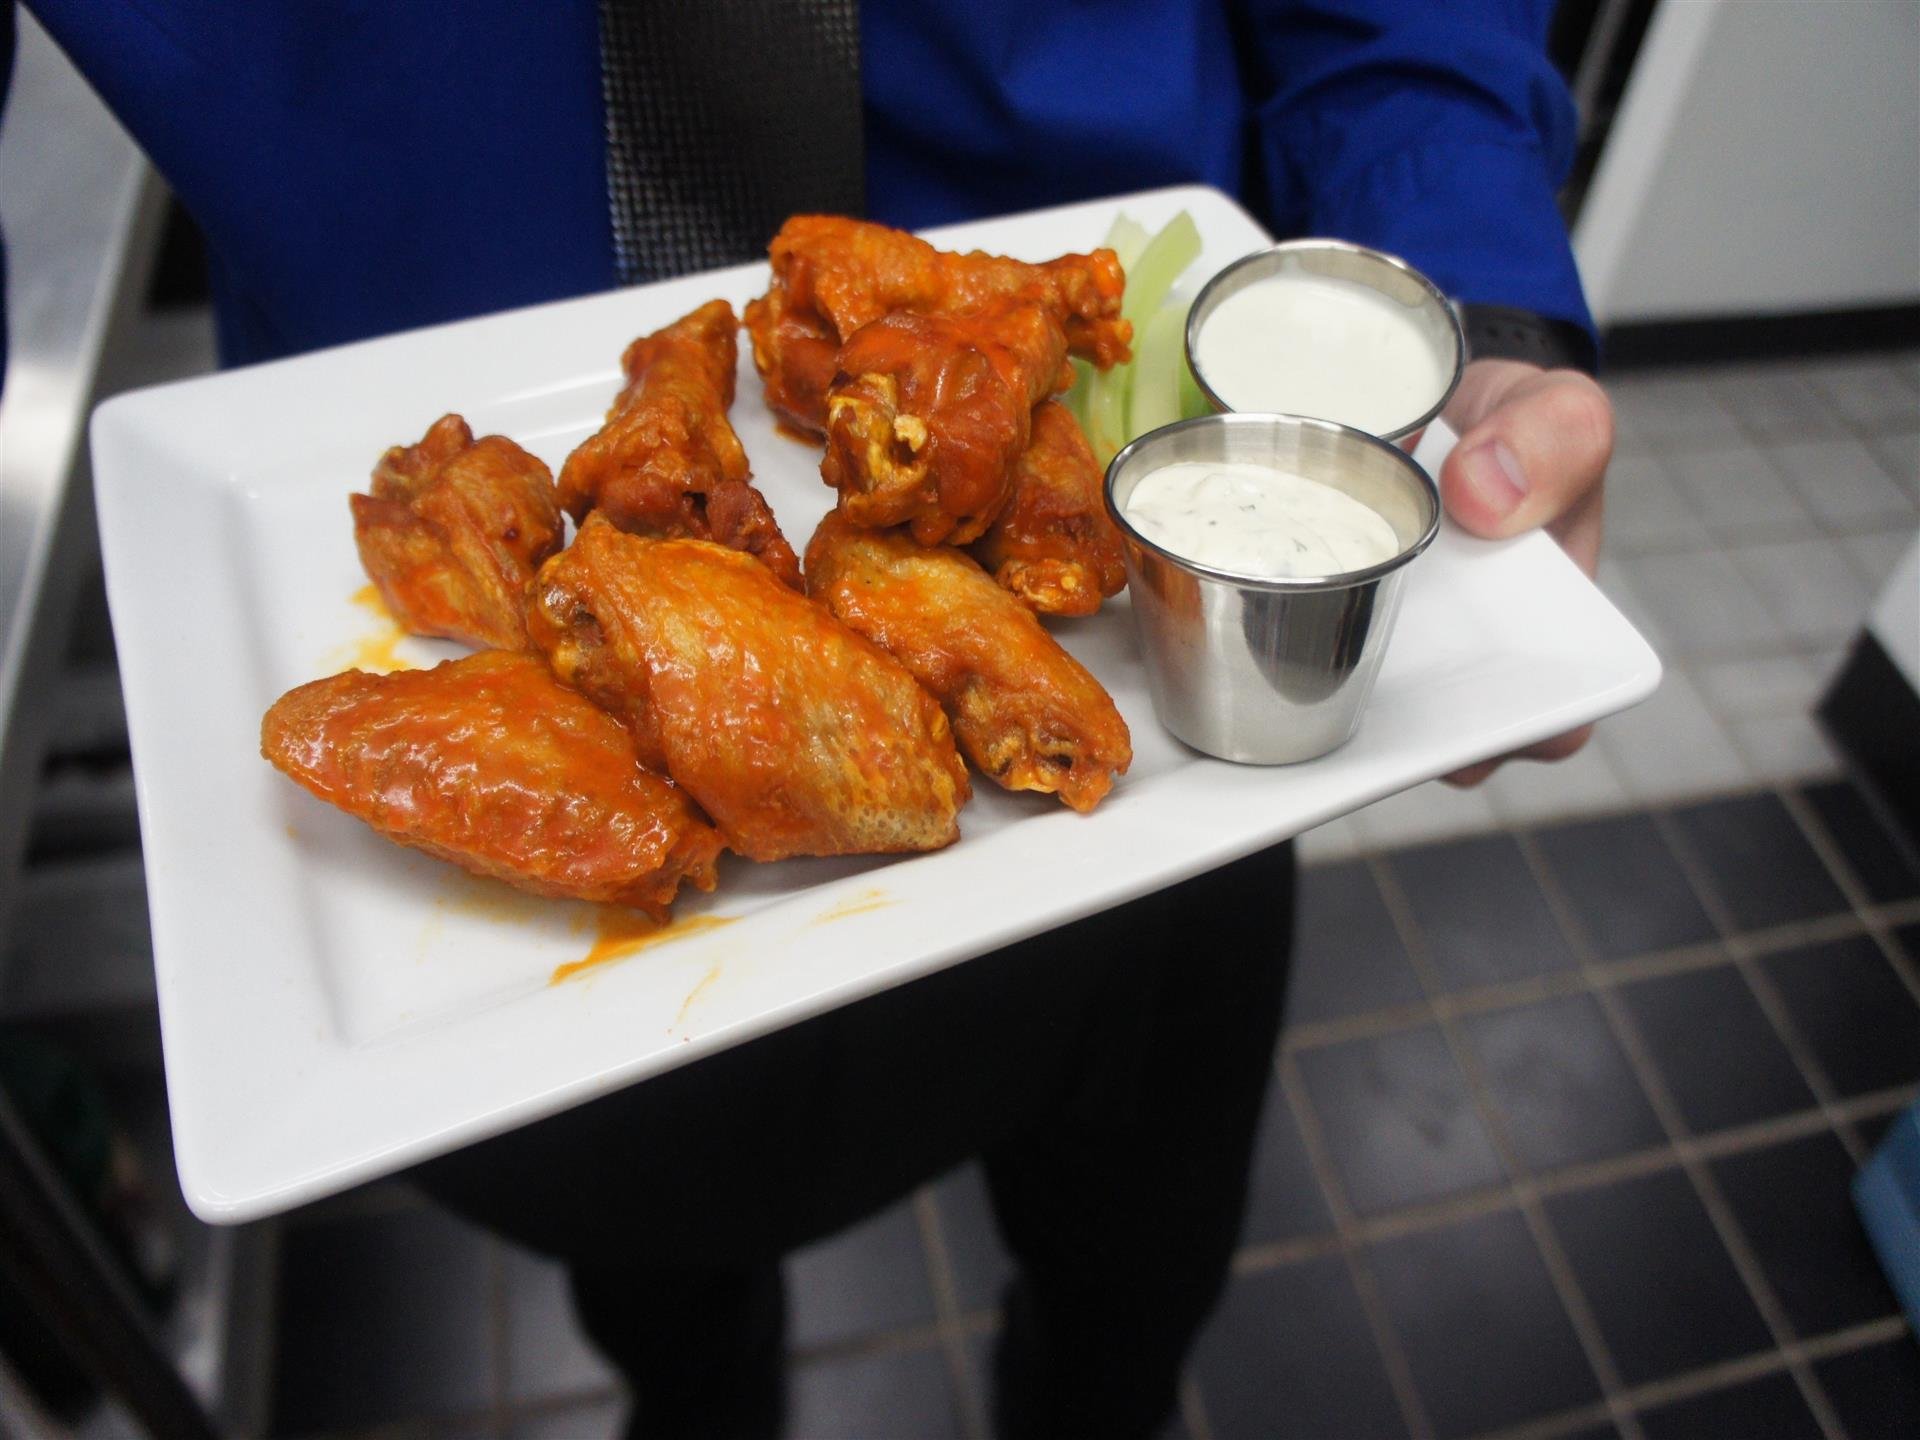 Chicken wings served with sides of ranch dressing with celery. Served on a white platter.